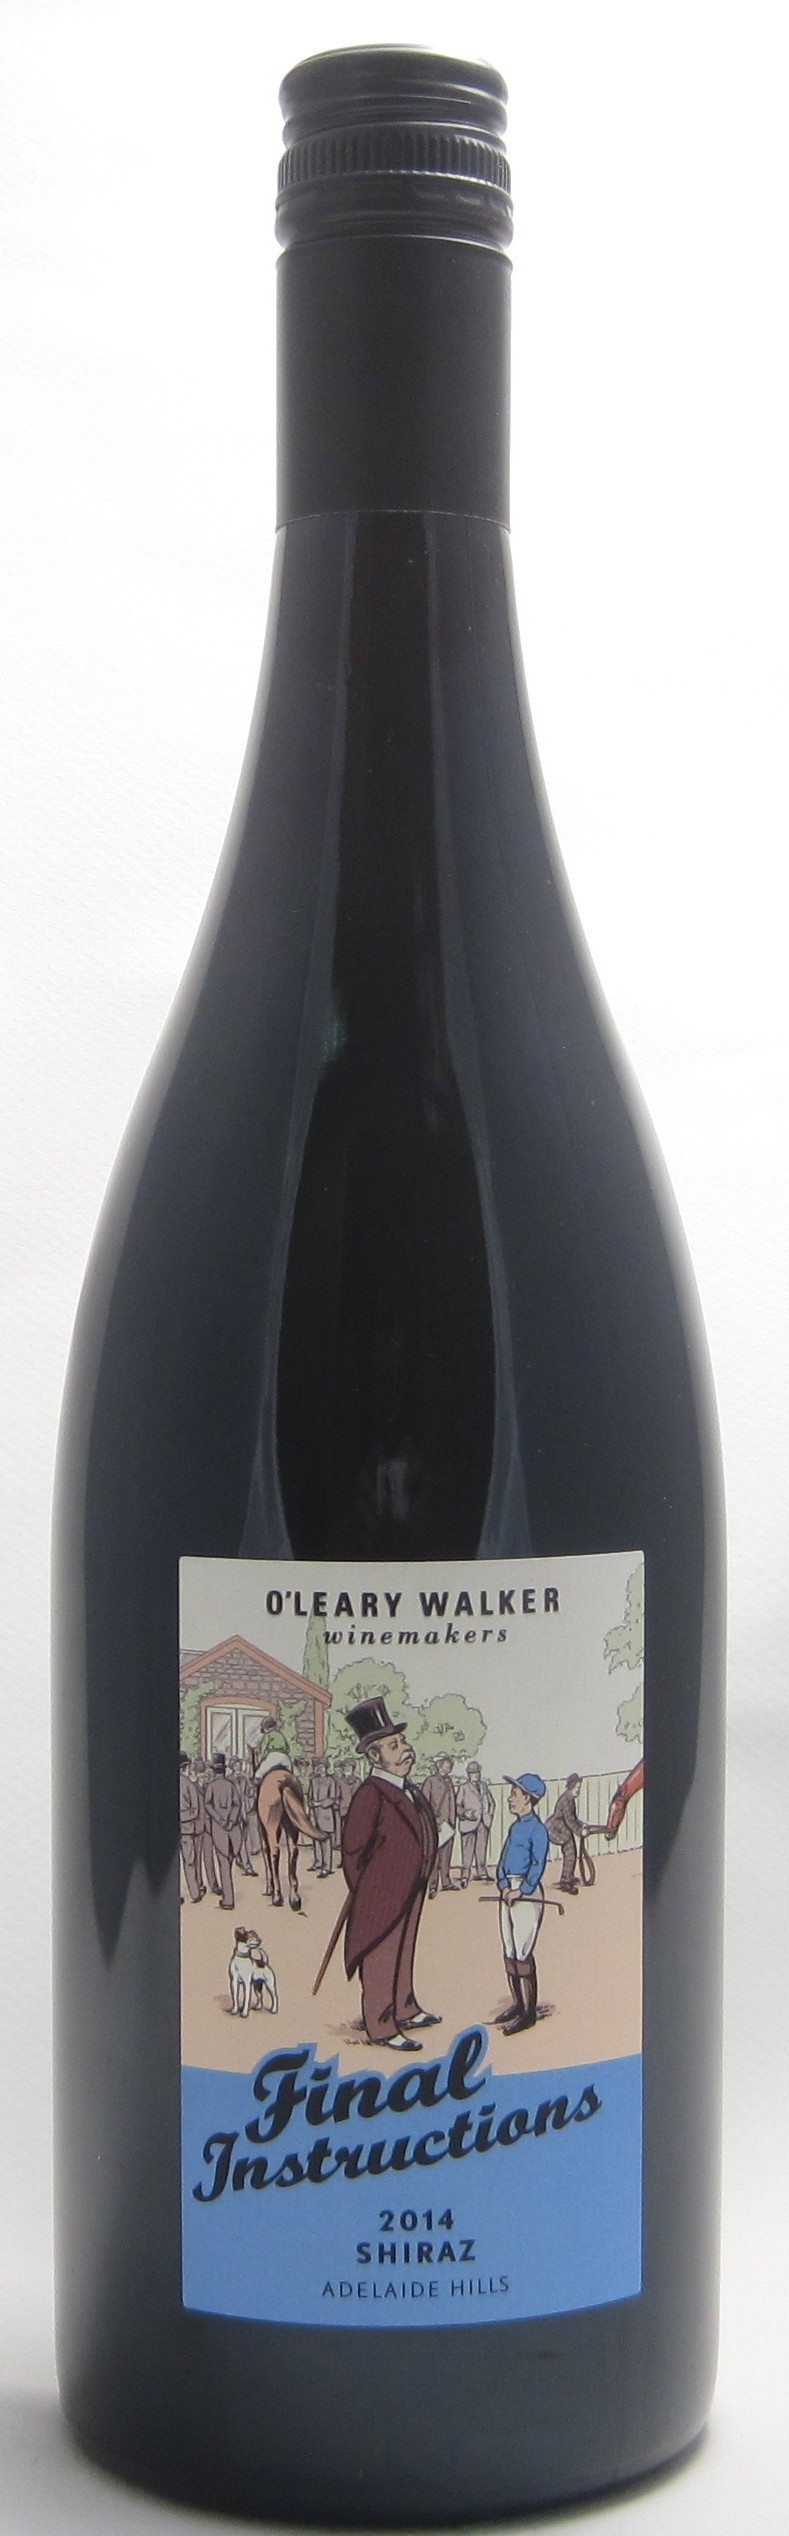 O'Leary Walker 'Final Instructions' Shiraz